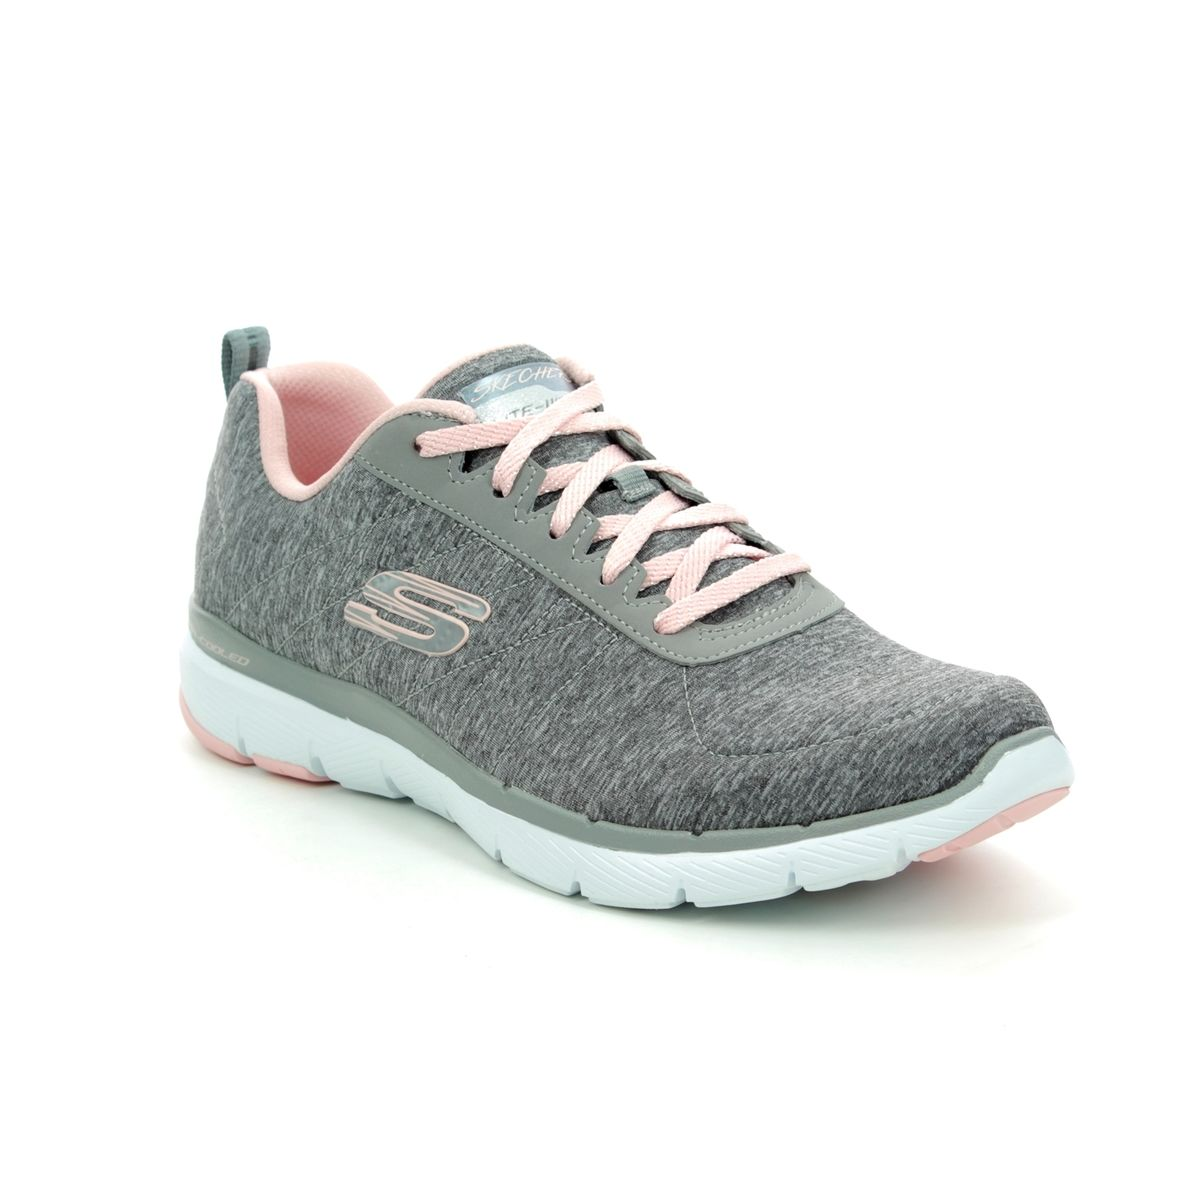 73069ee9335 Skechers Insiders Flex 13067 GYLP Grey - light pink trainers